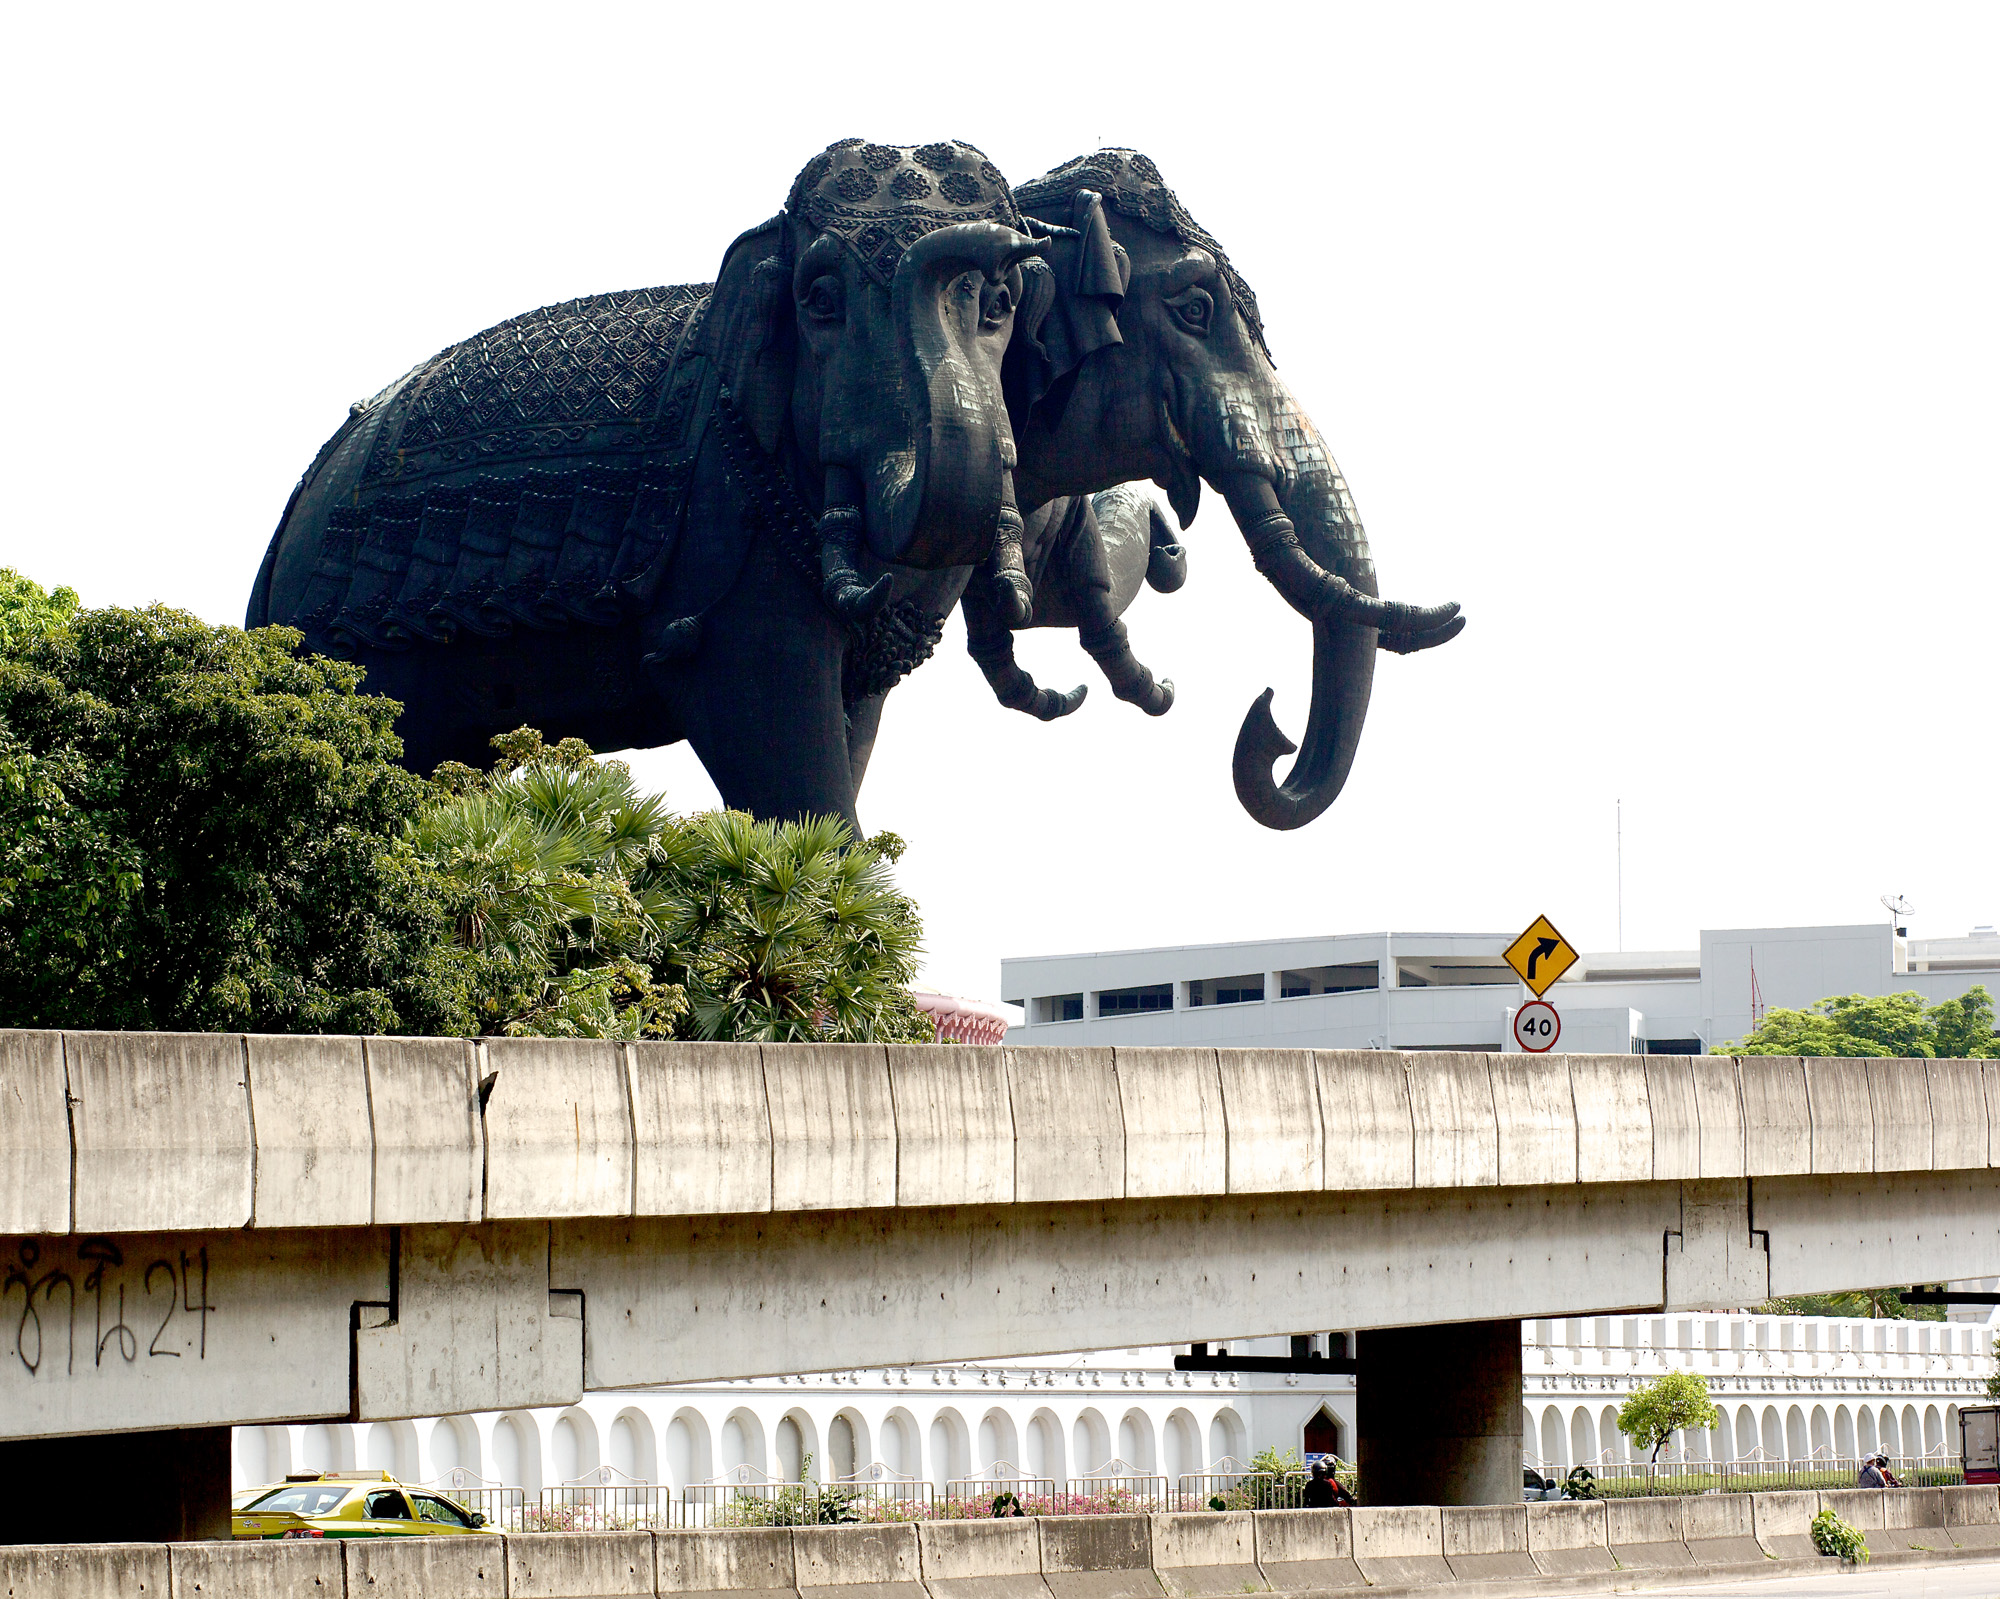 Three-headed elephant, from the road